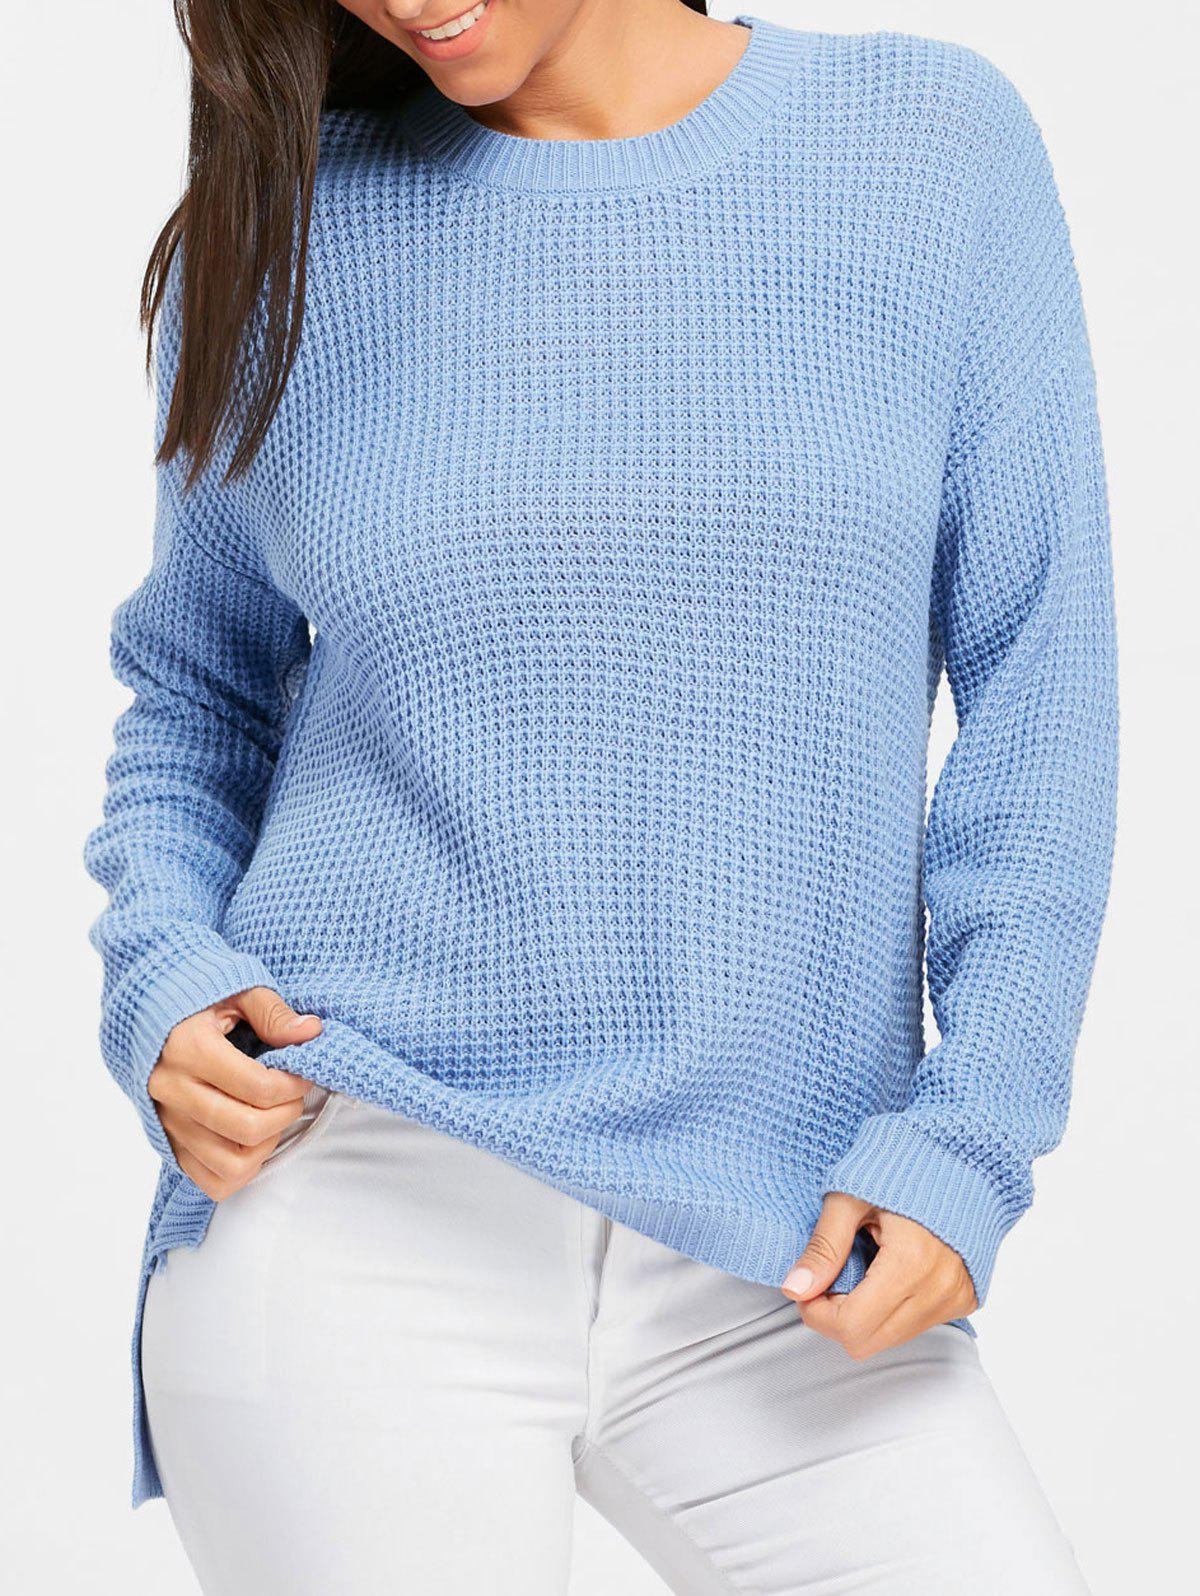 New Crew Neck High Low Tunic Sweater